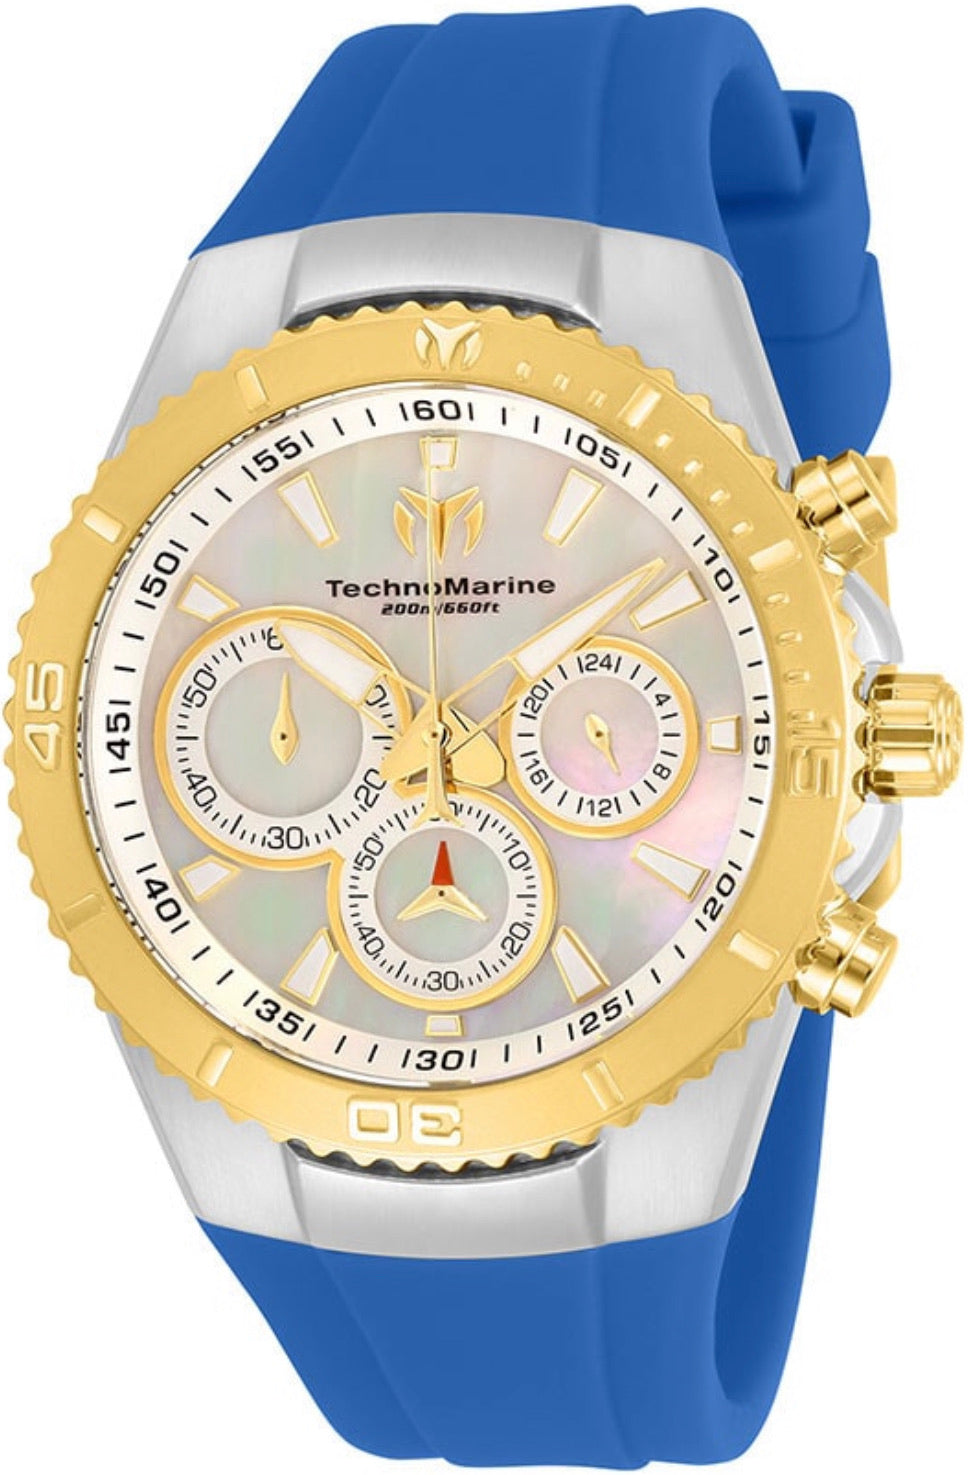 TECHNOMARINE MANTA MENS QUARTZ 40MM STAINLESS STEEL BLUE CASE MOTHER OF PEARL DIAL - MODEL TM-218043 - Boutique Watches & More